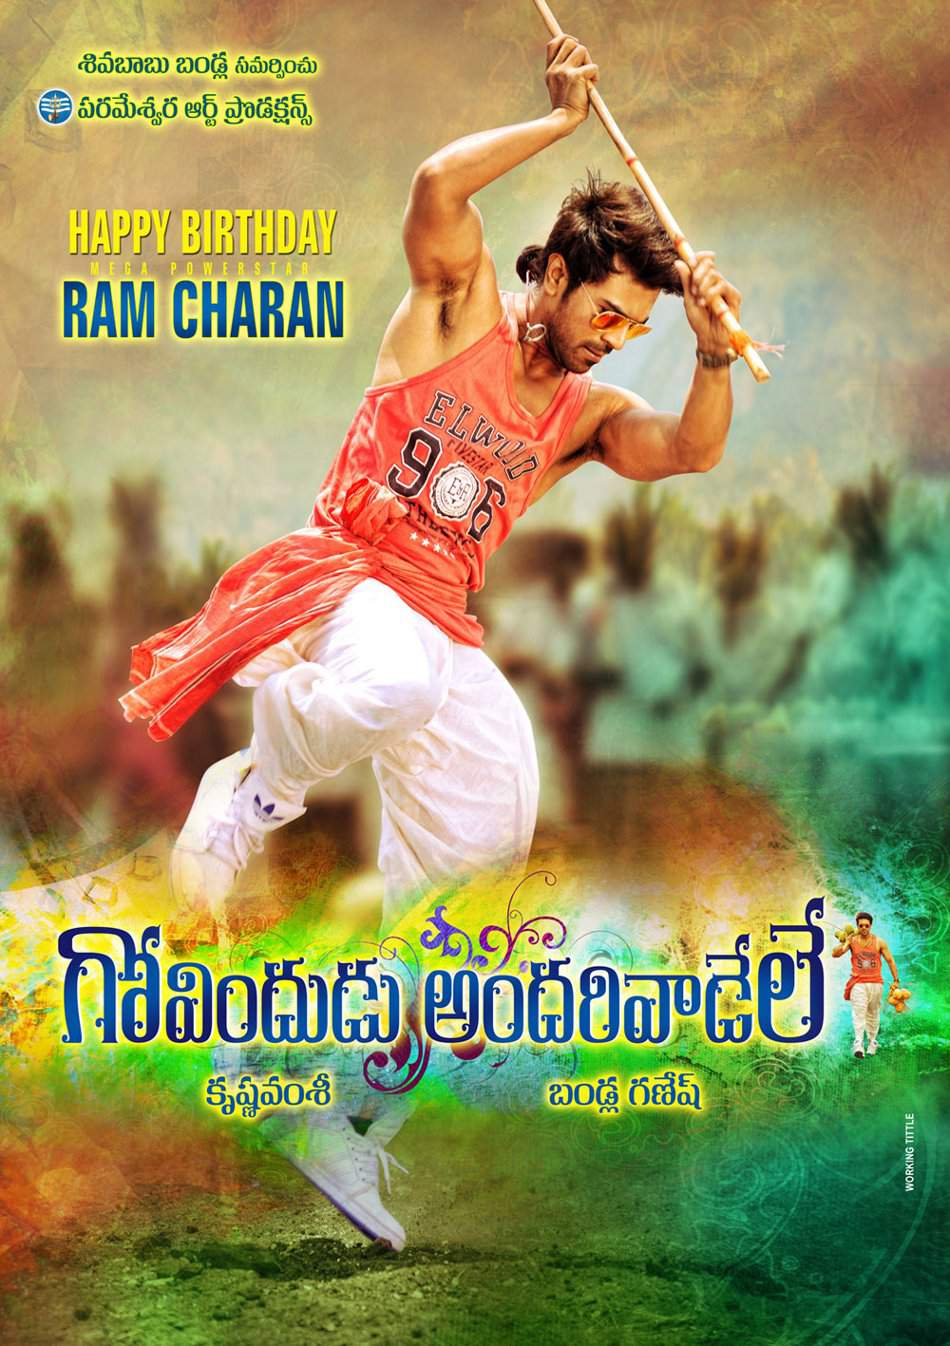 Govindudu Andarivadele wallpapers